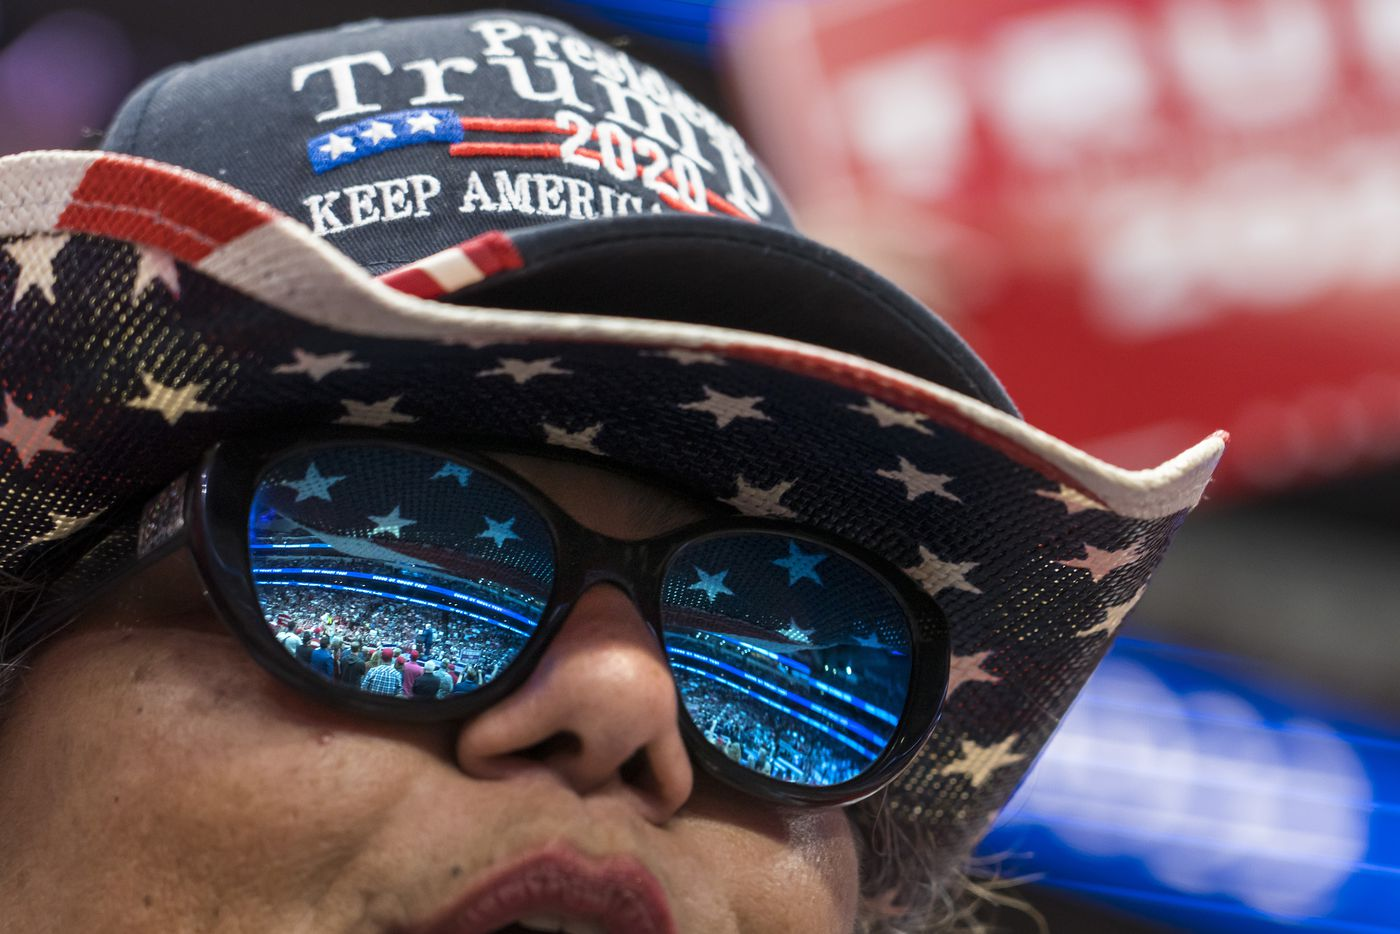 A supporter cheers President Donald Trump as he speaks during a campaign rally at the American Airlines Center on Thursday, Oct. 17, 2019, in Dallas.